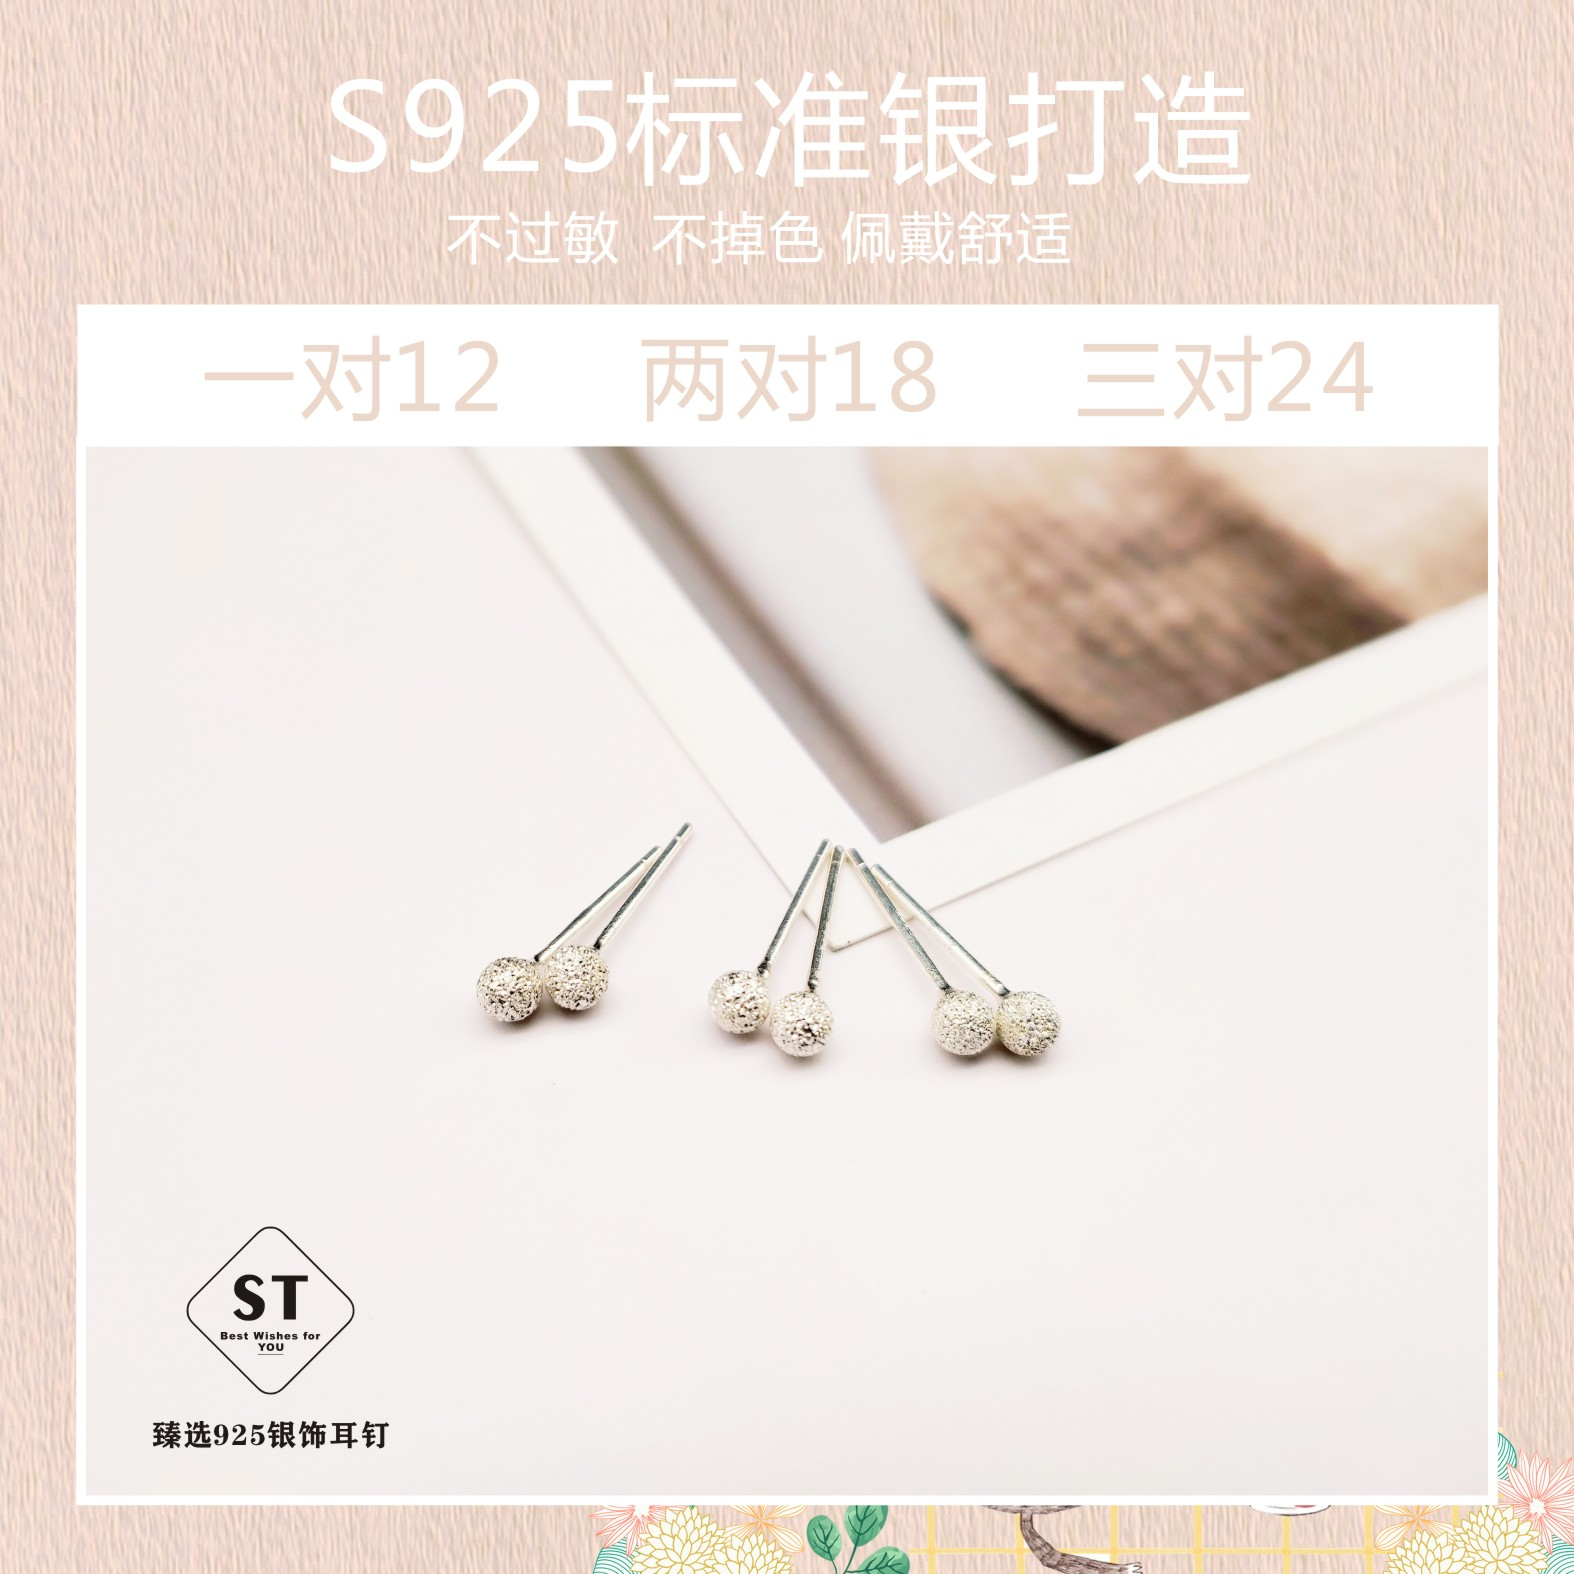 Pure silver 925 Earrings womens ear stick simple Earrings mens small earrings silver needles earrings earrings earrings silver jewelry